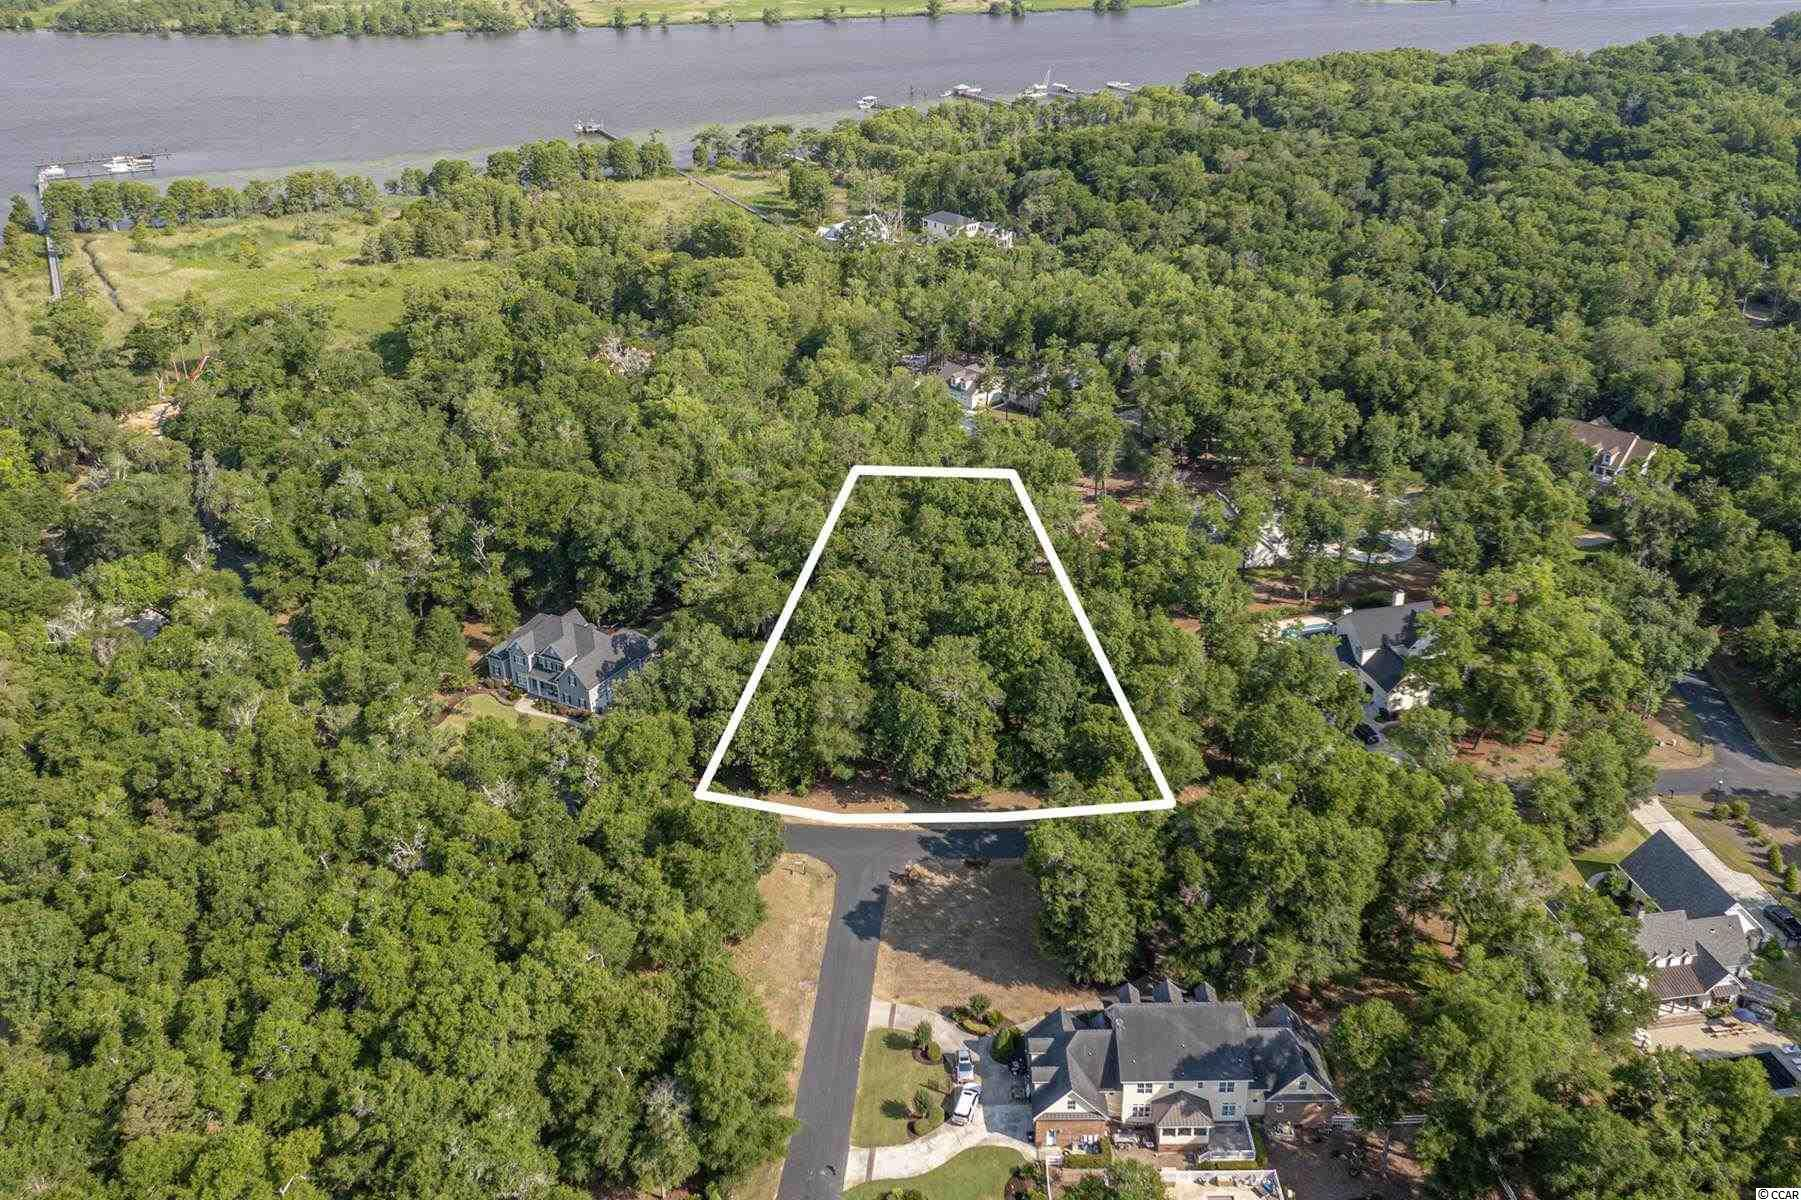 Amazing opportunity to build your very own private estate in one of the most exclusive gated neighborhoods in Pawleys Island, Allston Bluffs ! Lot 6 Susannah Lane is over 1.27+/- Acres and Backs to the common area for extra privacy. In addition, each of the 20 homesites in Allston Bluffs comes with a dedicated boat slip in the community's private Marina ! The Clubhouse Overlooks the Waccamaw River and inside features a wood burning fireplace & full kitchen. It is perfect to host events, parties, and relaxing after a day cruise on the river. The community has the perfect southern charm as it is beautifully lined with live oaks draped in Spanish moss. Just a 10 Minute Drive to Georgetown, short day trip away to historic Charleston, or you can head up north to all the attractions of Myrtle Beach. Close to all the boutique shopping and dining in Pawleys Island. Call today for a showing !